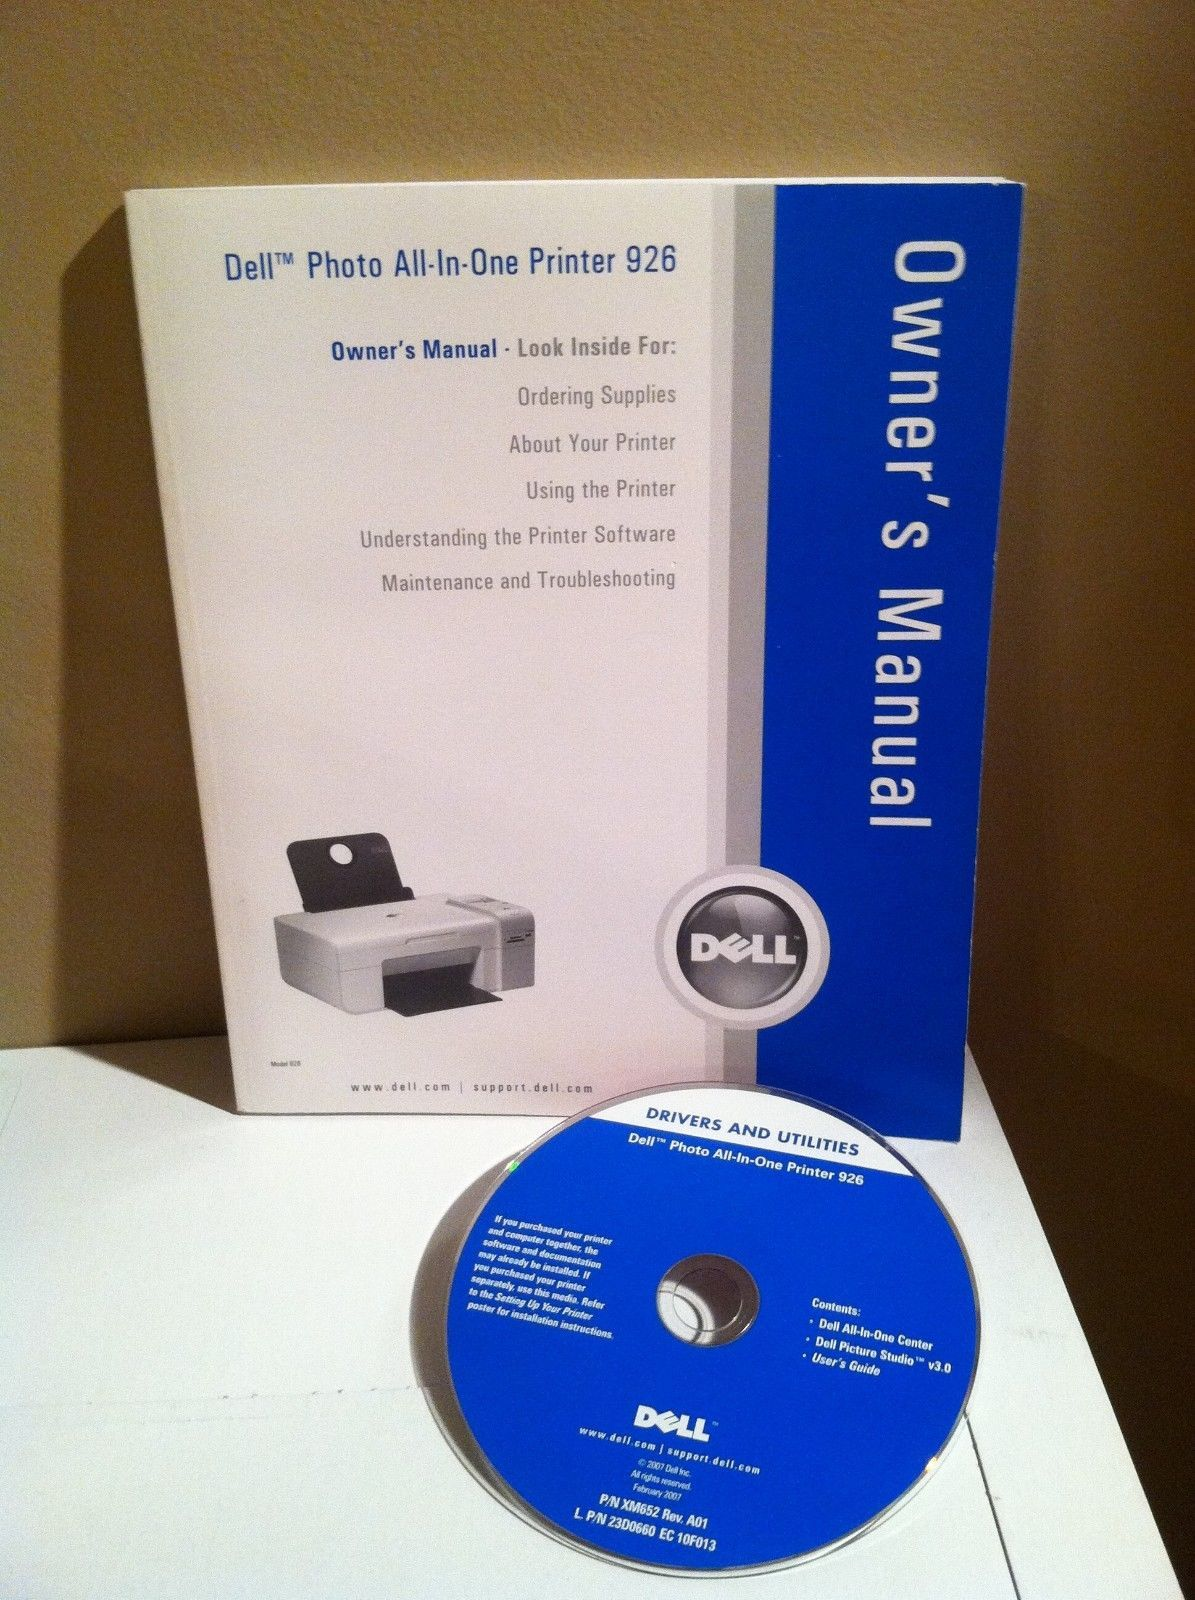 dell photo all in one printer 926 owner s manual printer driver rh pinterest com Dell AIO Printer Dell Printer All in One